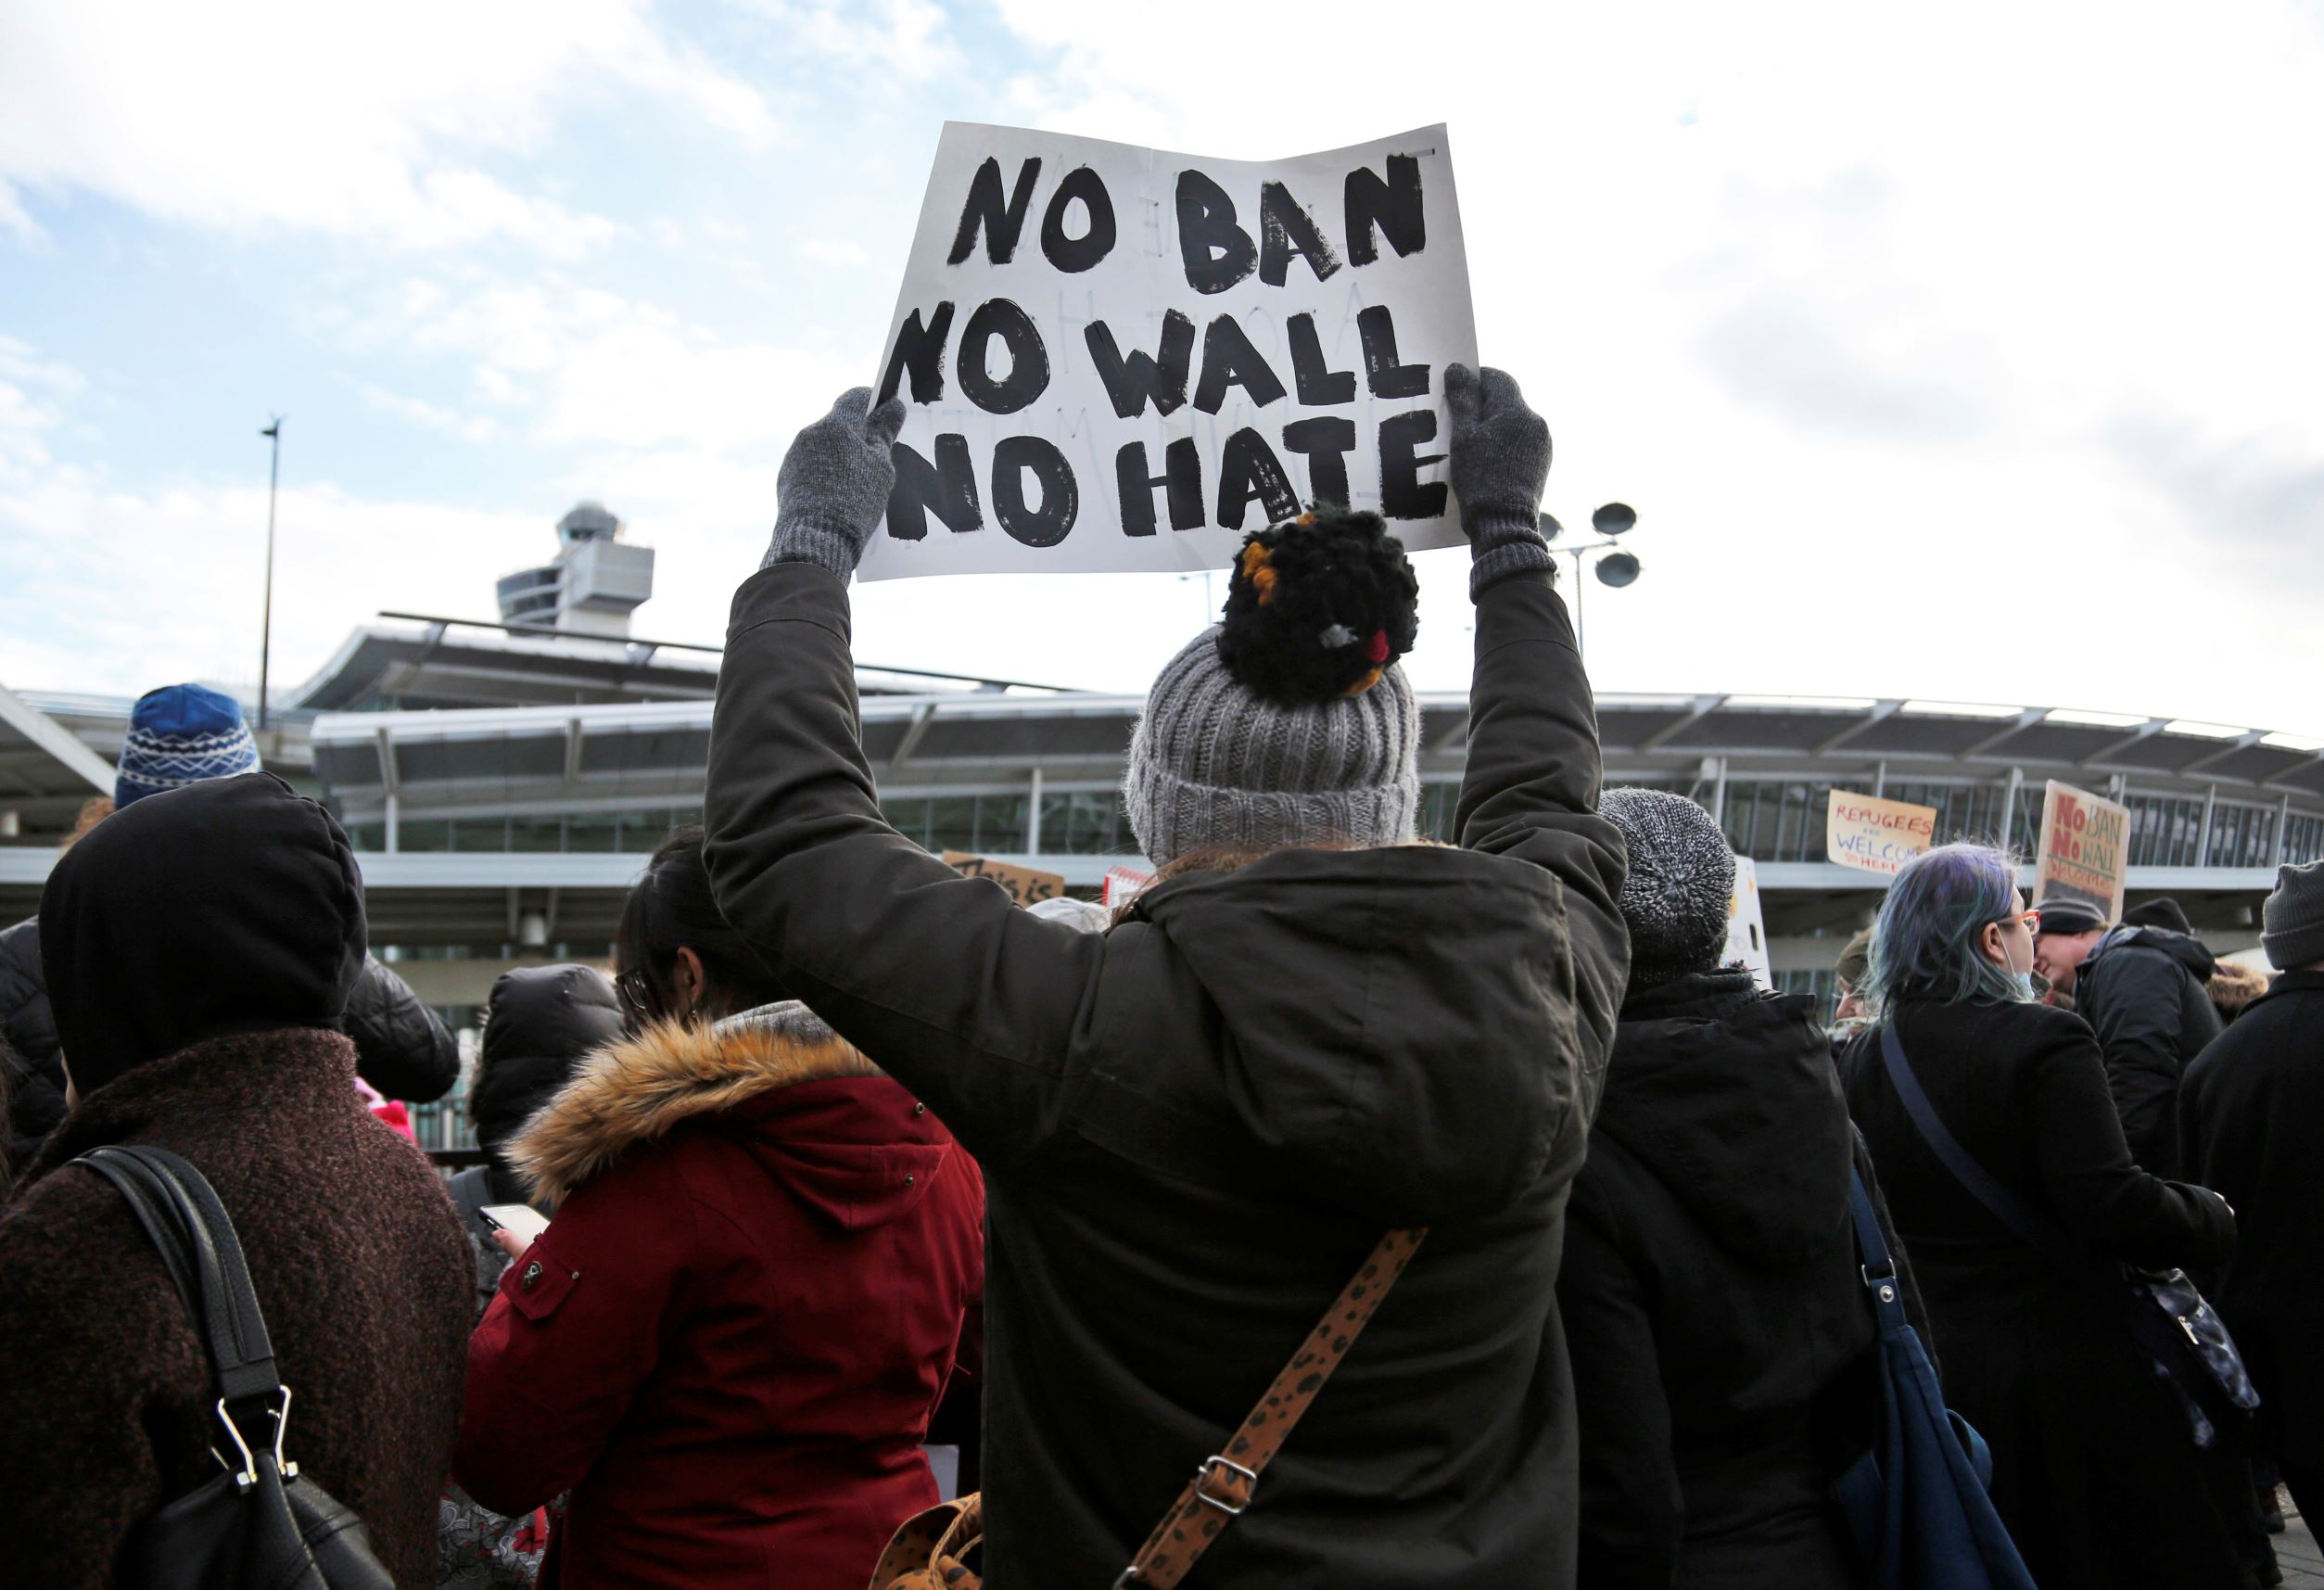 Slide 1 of 32: Protesters rally in front of John F. Kennedy International Airport in New York, Sunday, Jan. 29, 2017. President Donald Trump's immigration order sowed more chaos and outrage across the country Sunday, with travelers detained at airports, panicked families searching for relatives and protesters registering opposition to the sweeping measure that was blocked by several federal courts. (AP Photo/Seth Wenig)